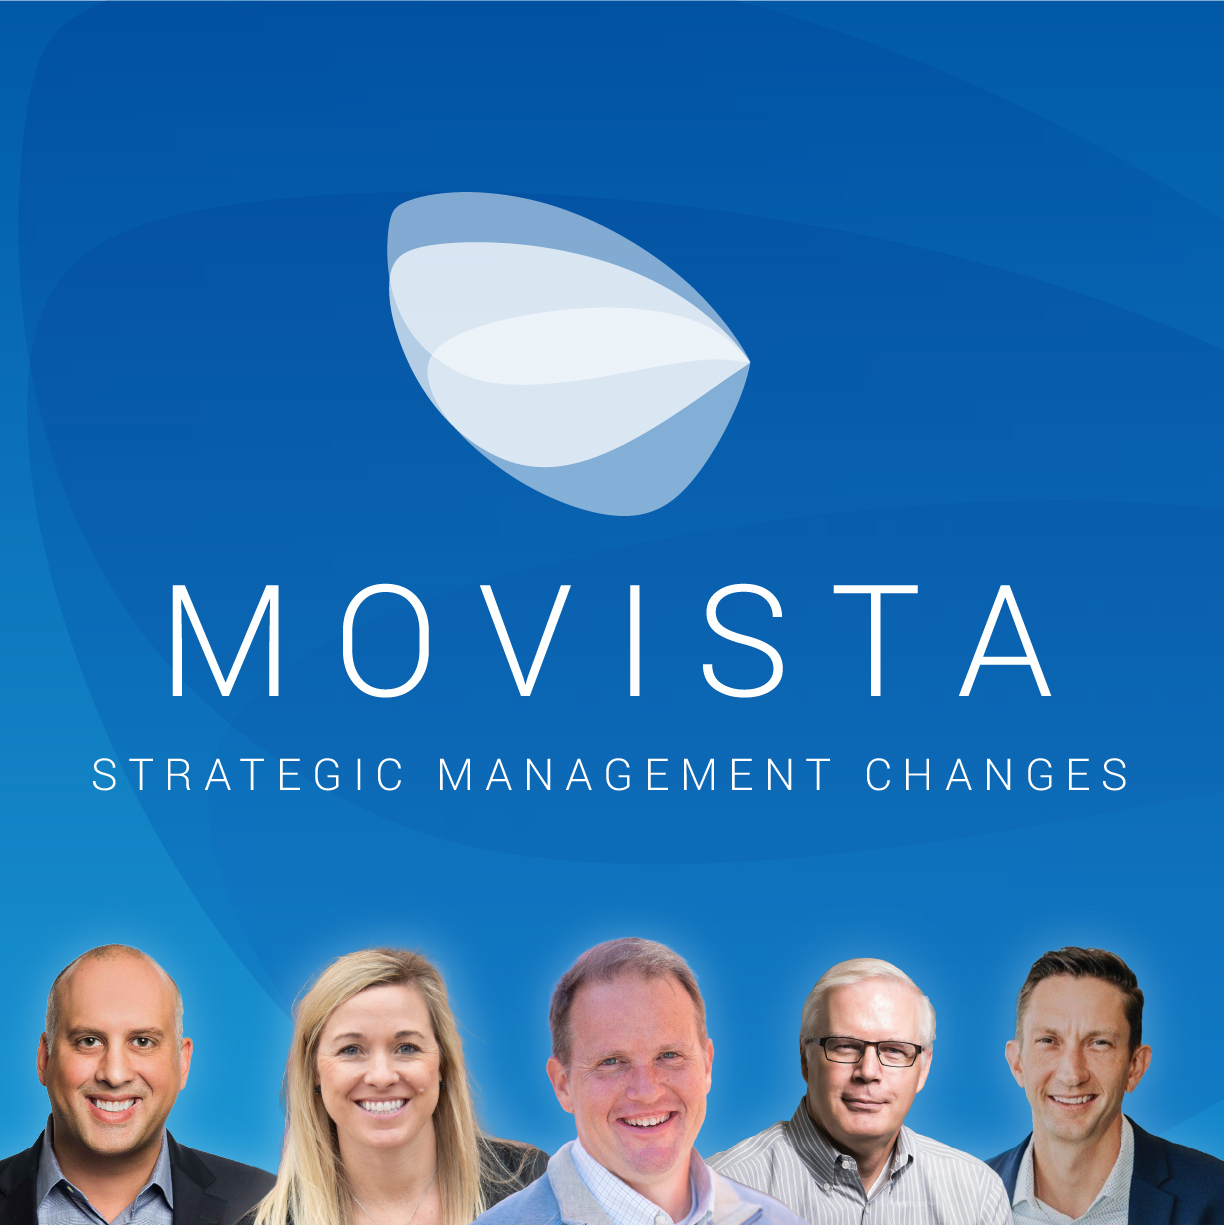 Movista Makes Strategic Management Changes, Continues to Grow